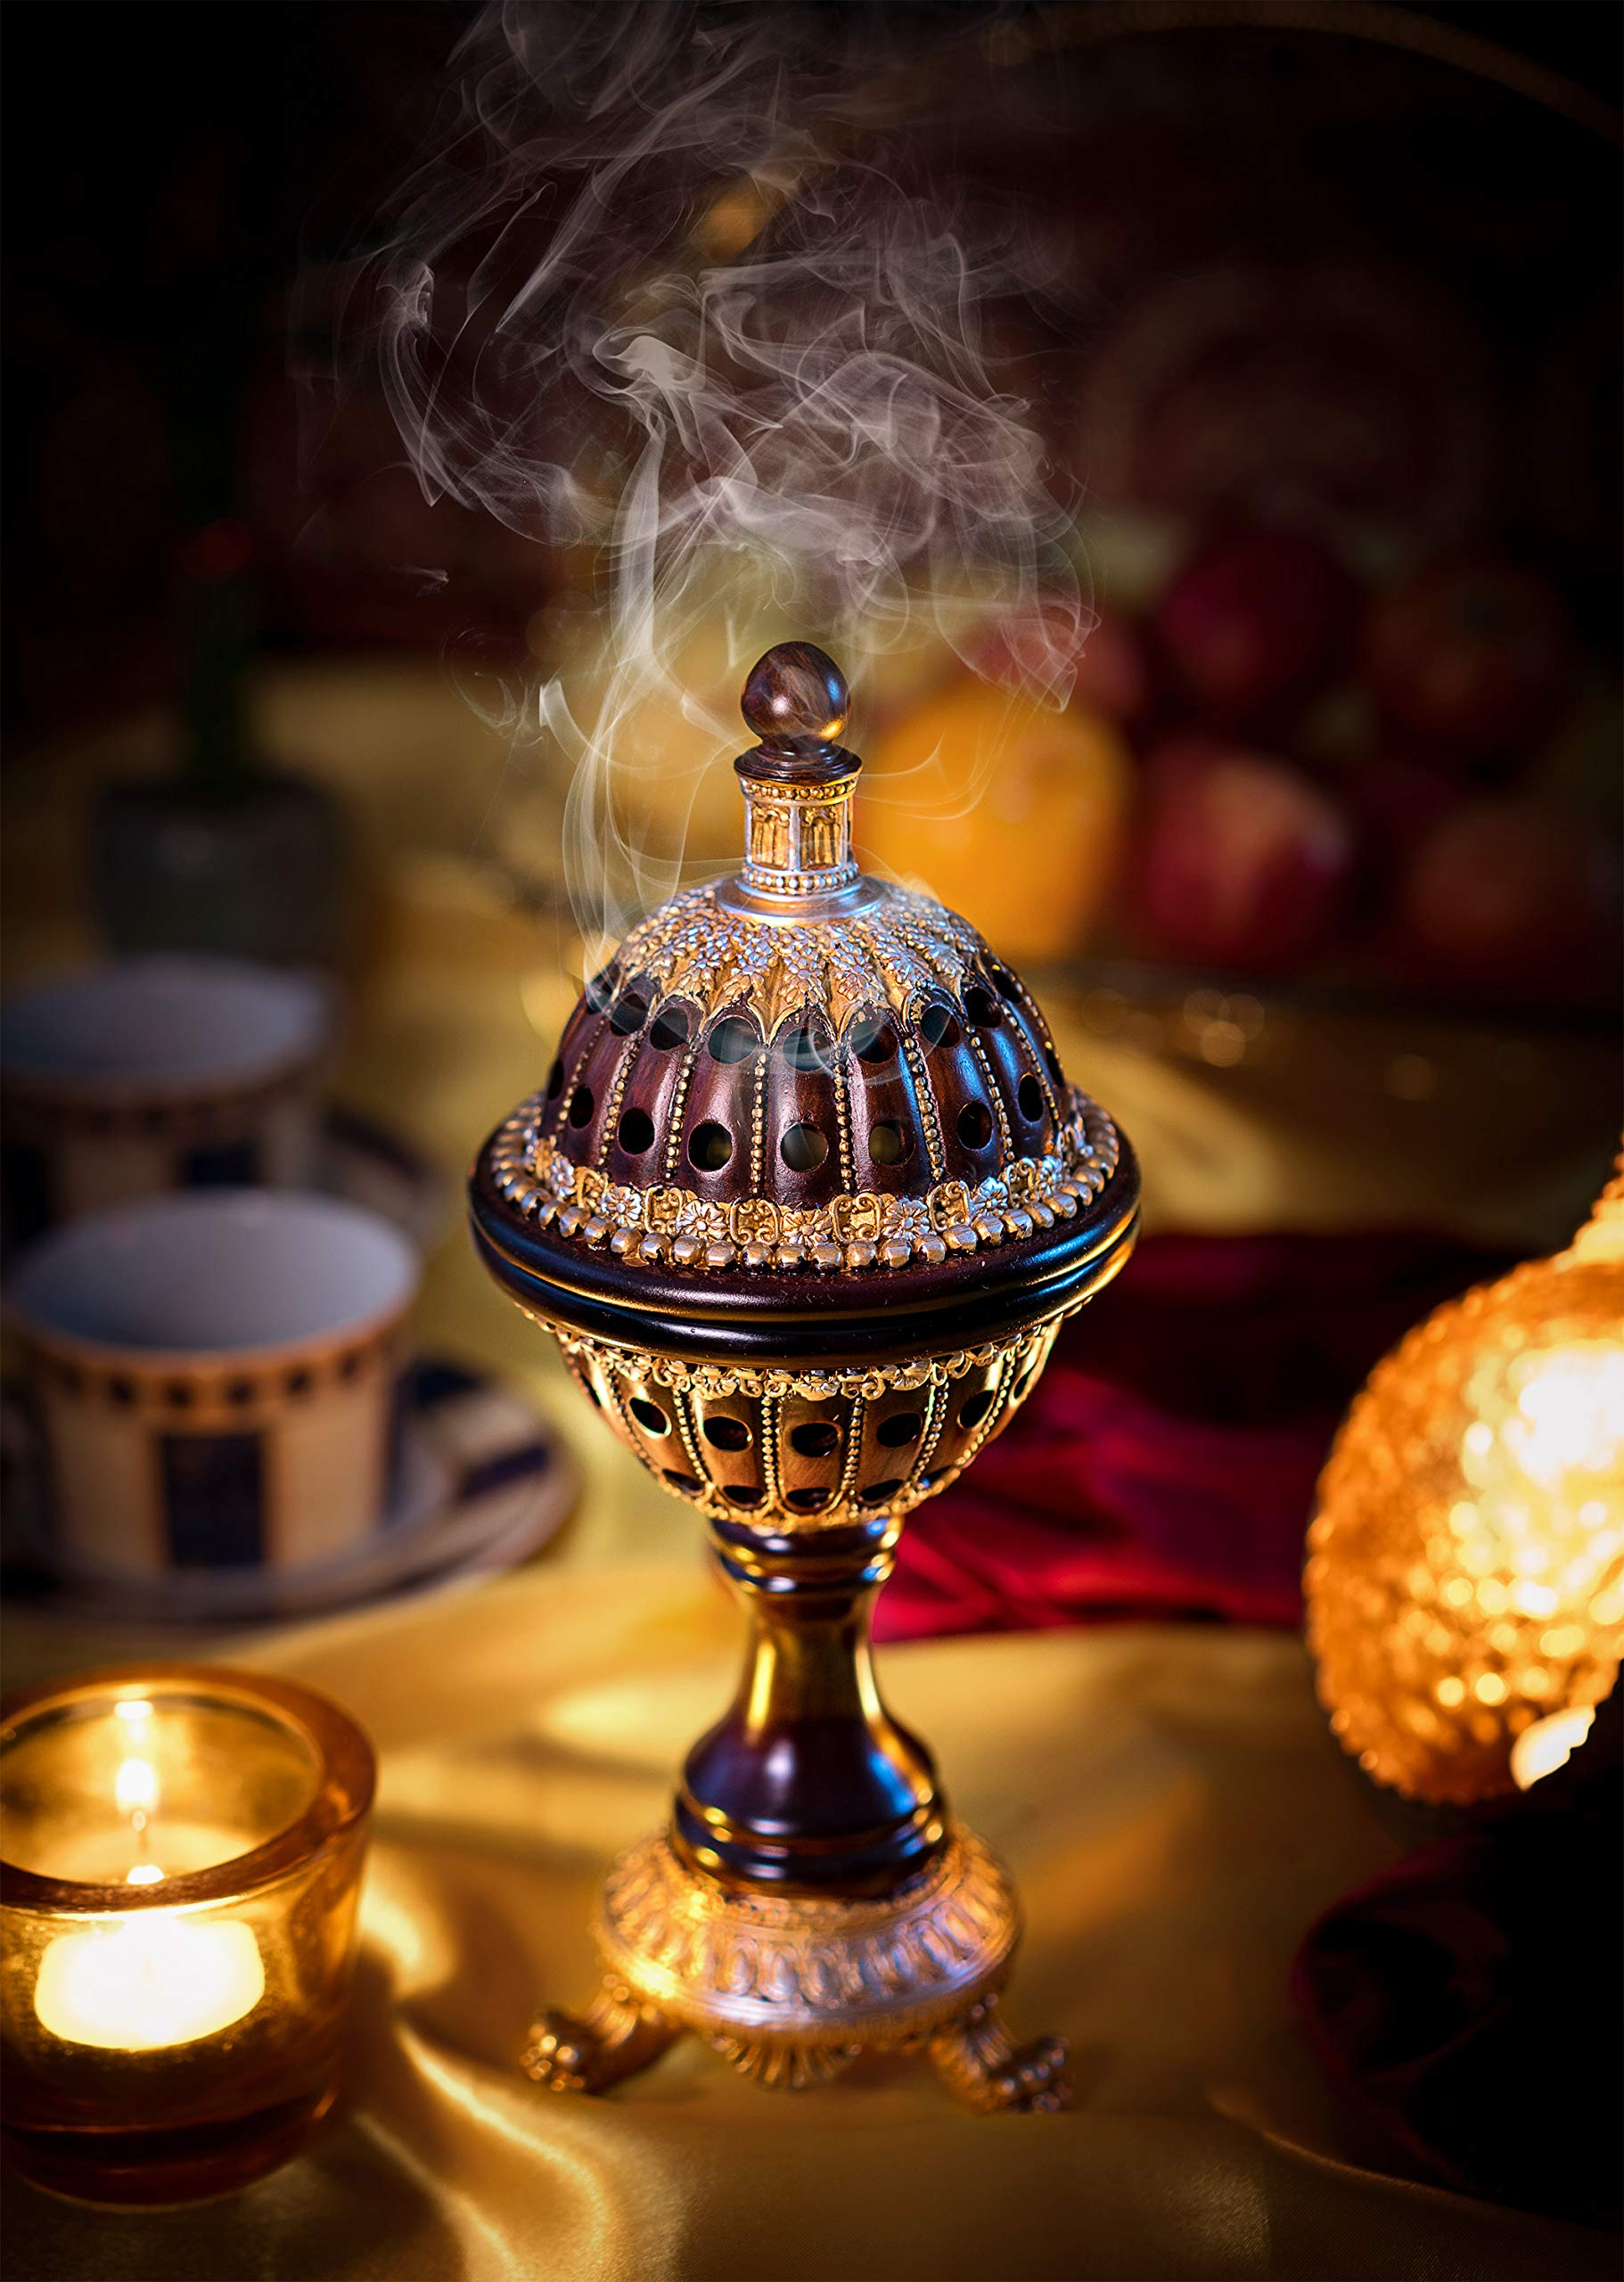 AM Incense Burner Frankincense Resin - Luxury Globe Charcoal Bakhoor Burners For Office & Home Decor by AM (Image #2)